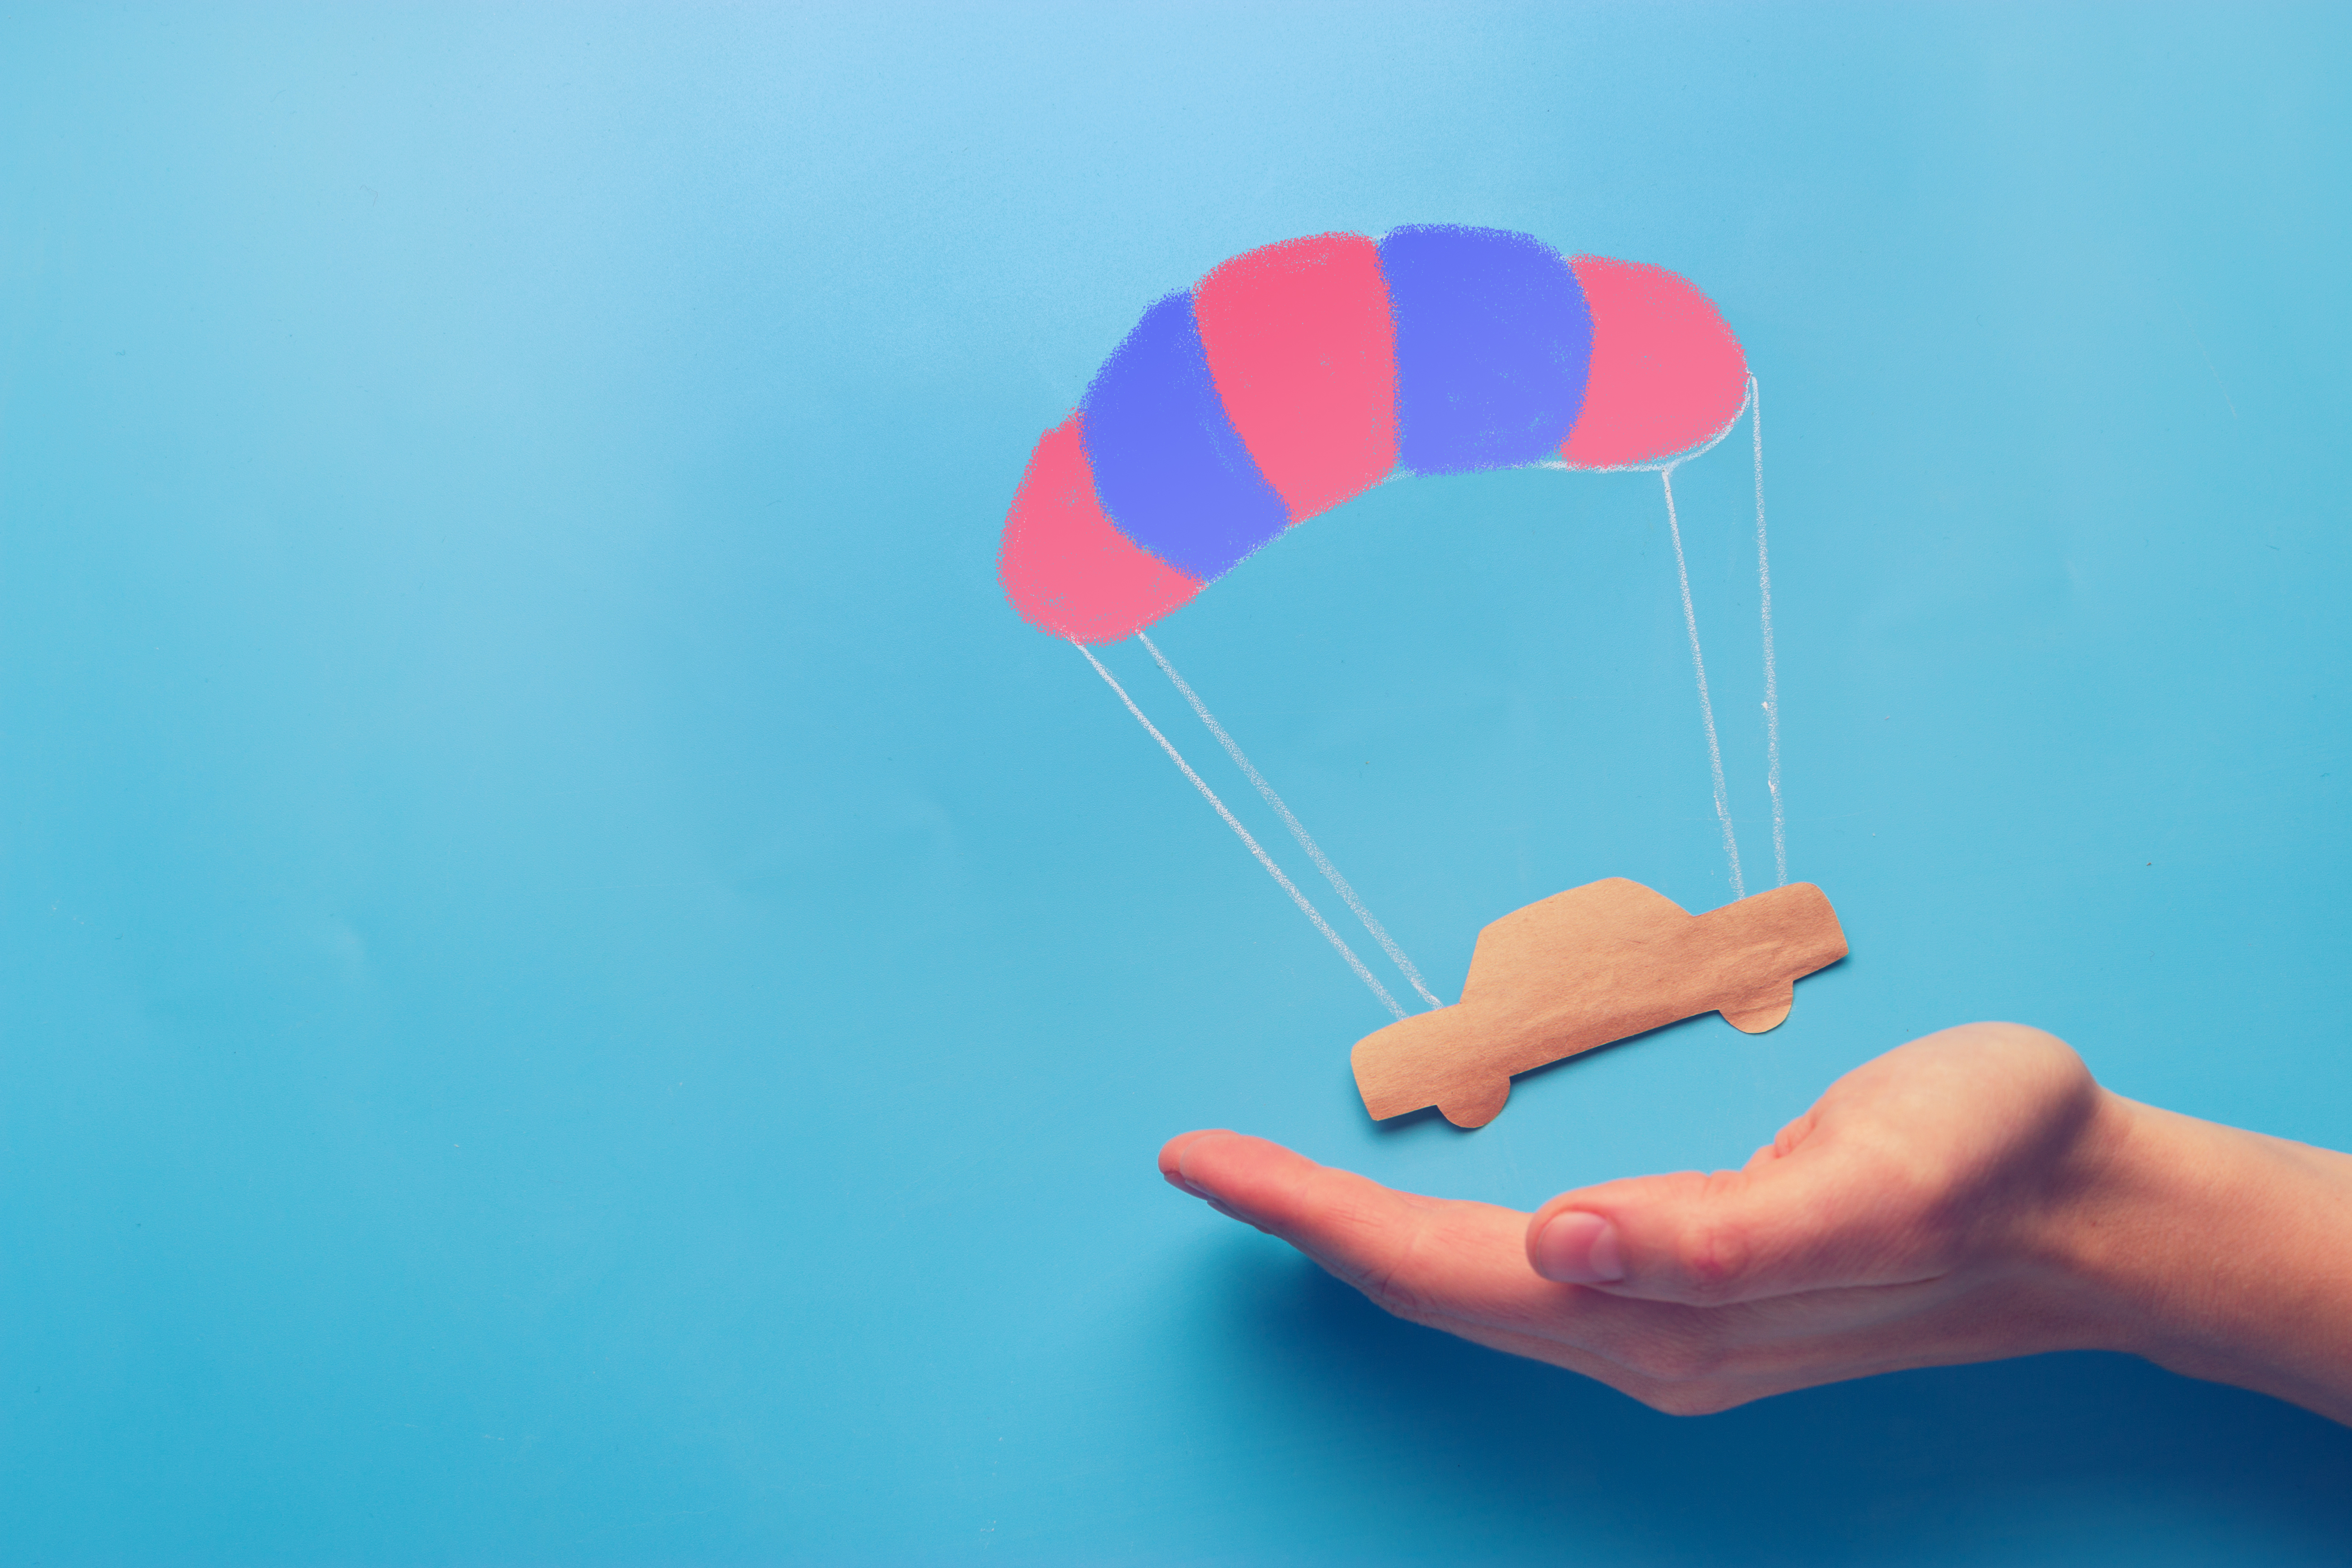 Check Out This Deer Drop Parachute Stem Activity You Can Do At Home